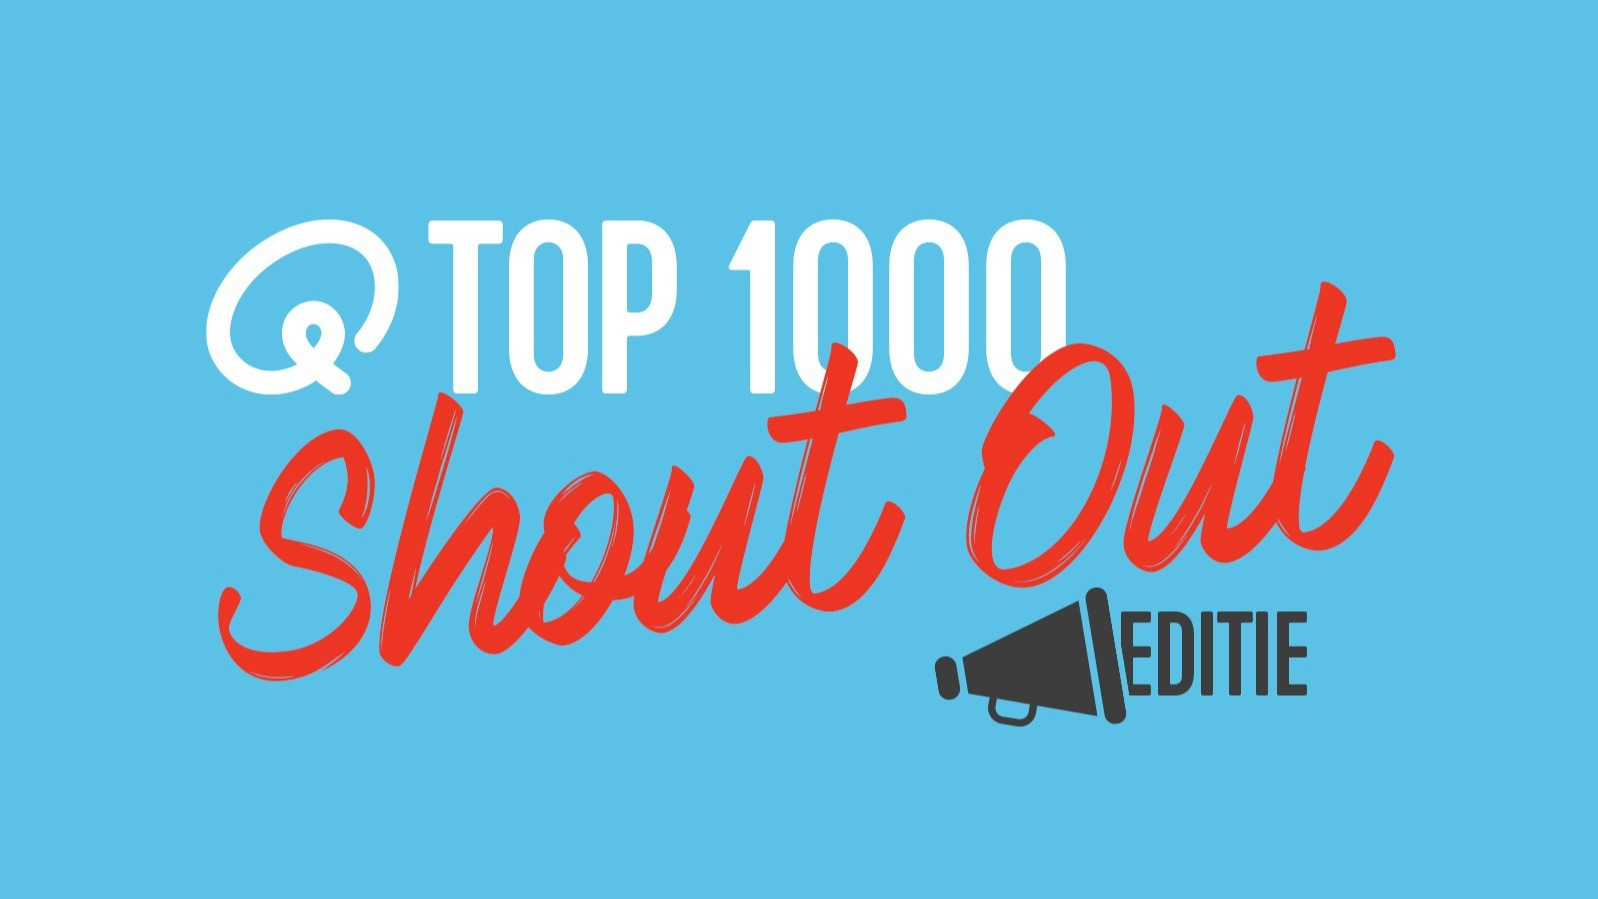 Top1000 shout out blauw